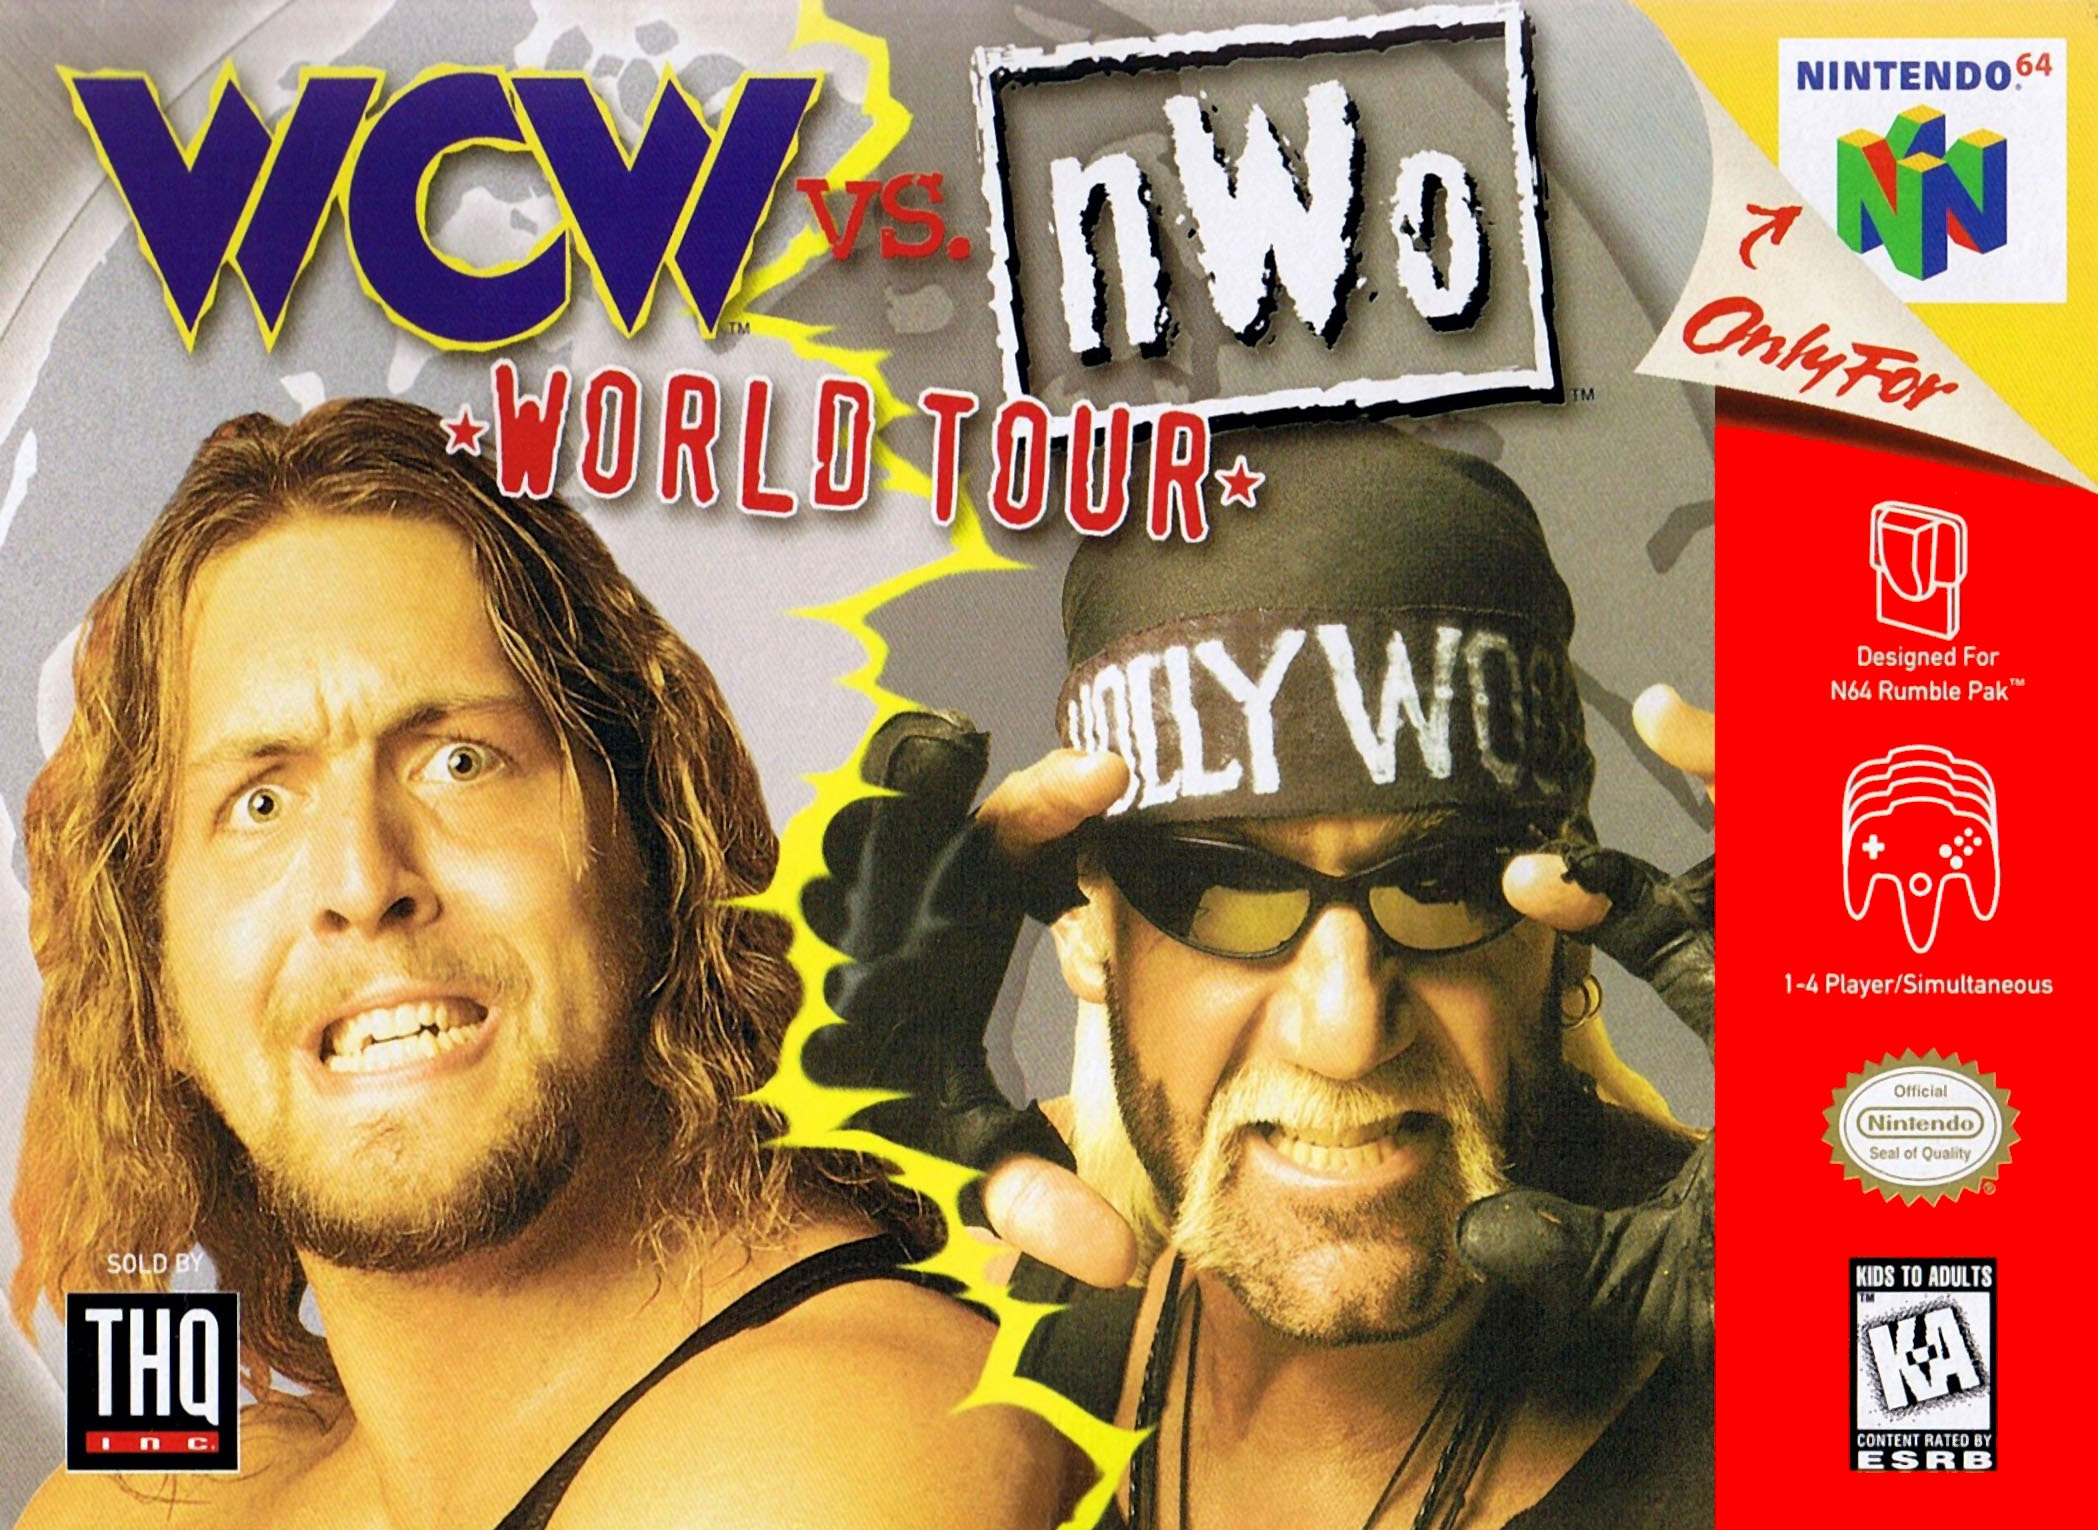 n64_wcw_vs_nwo_world_tour_p_vfg37l.jpg